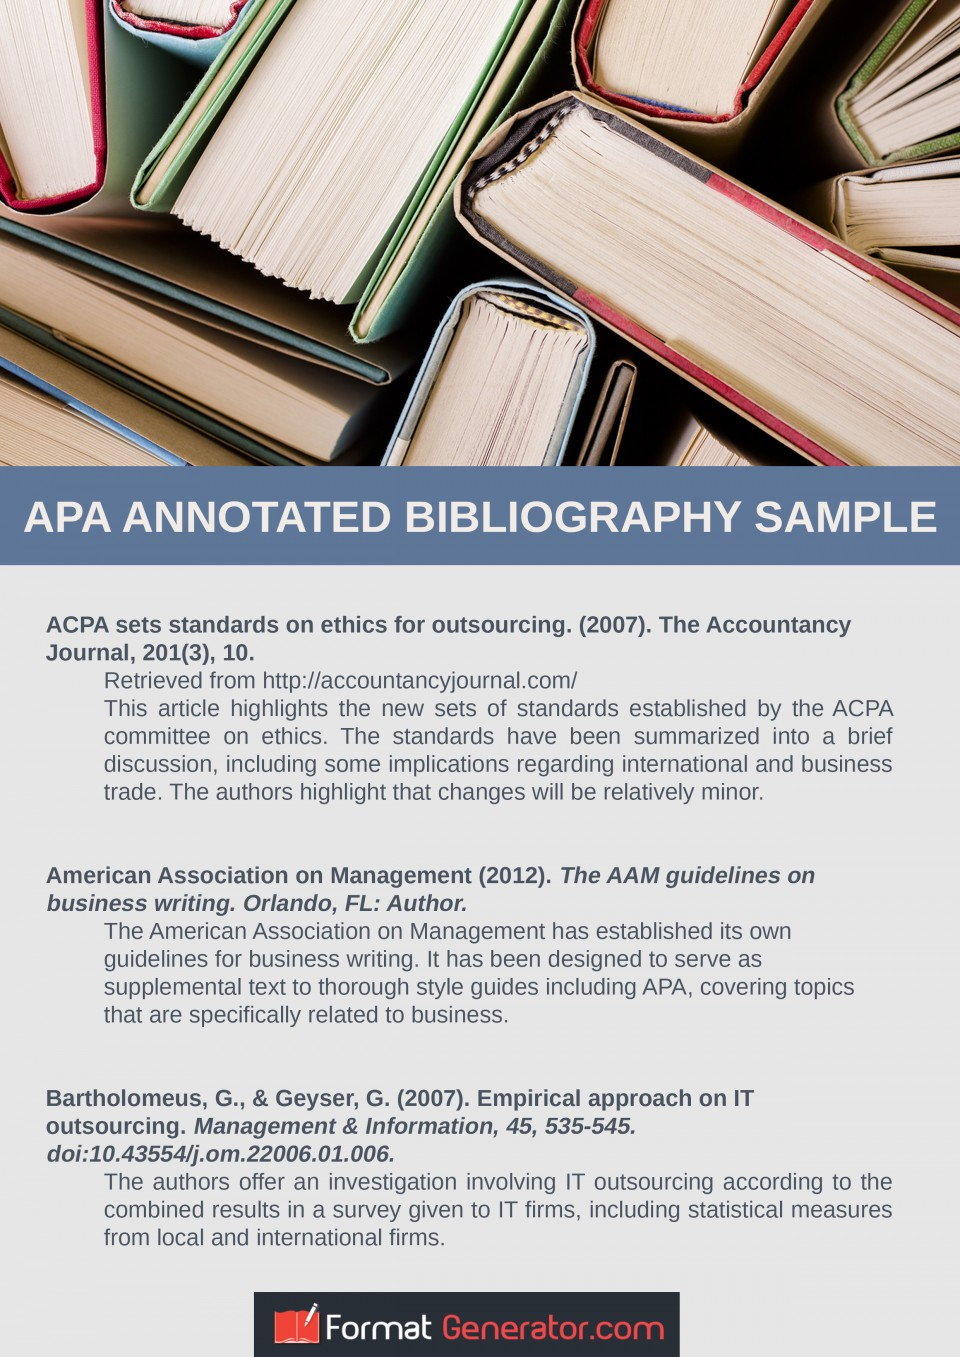 023 Free Online Research Paper Generator Apa Annotated Bibliography Outstanding Outline 960